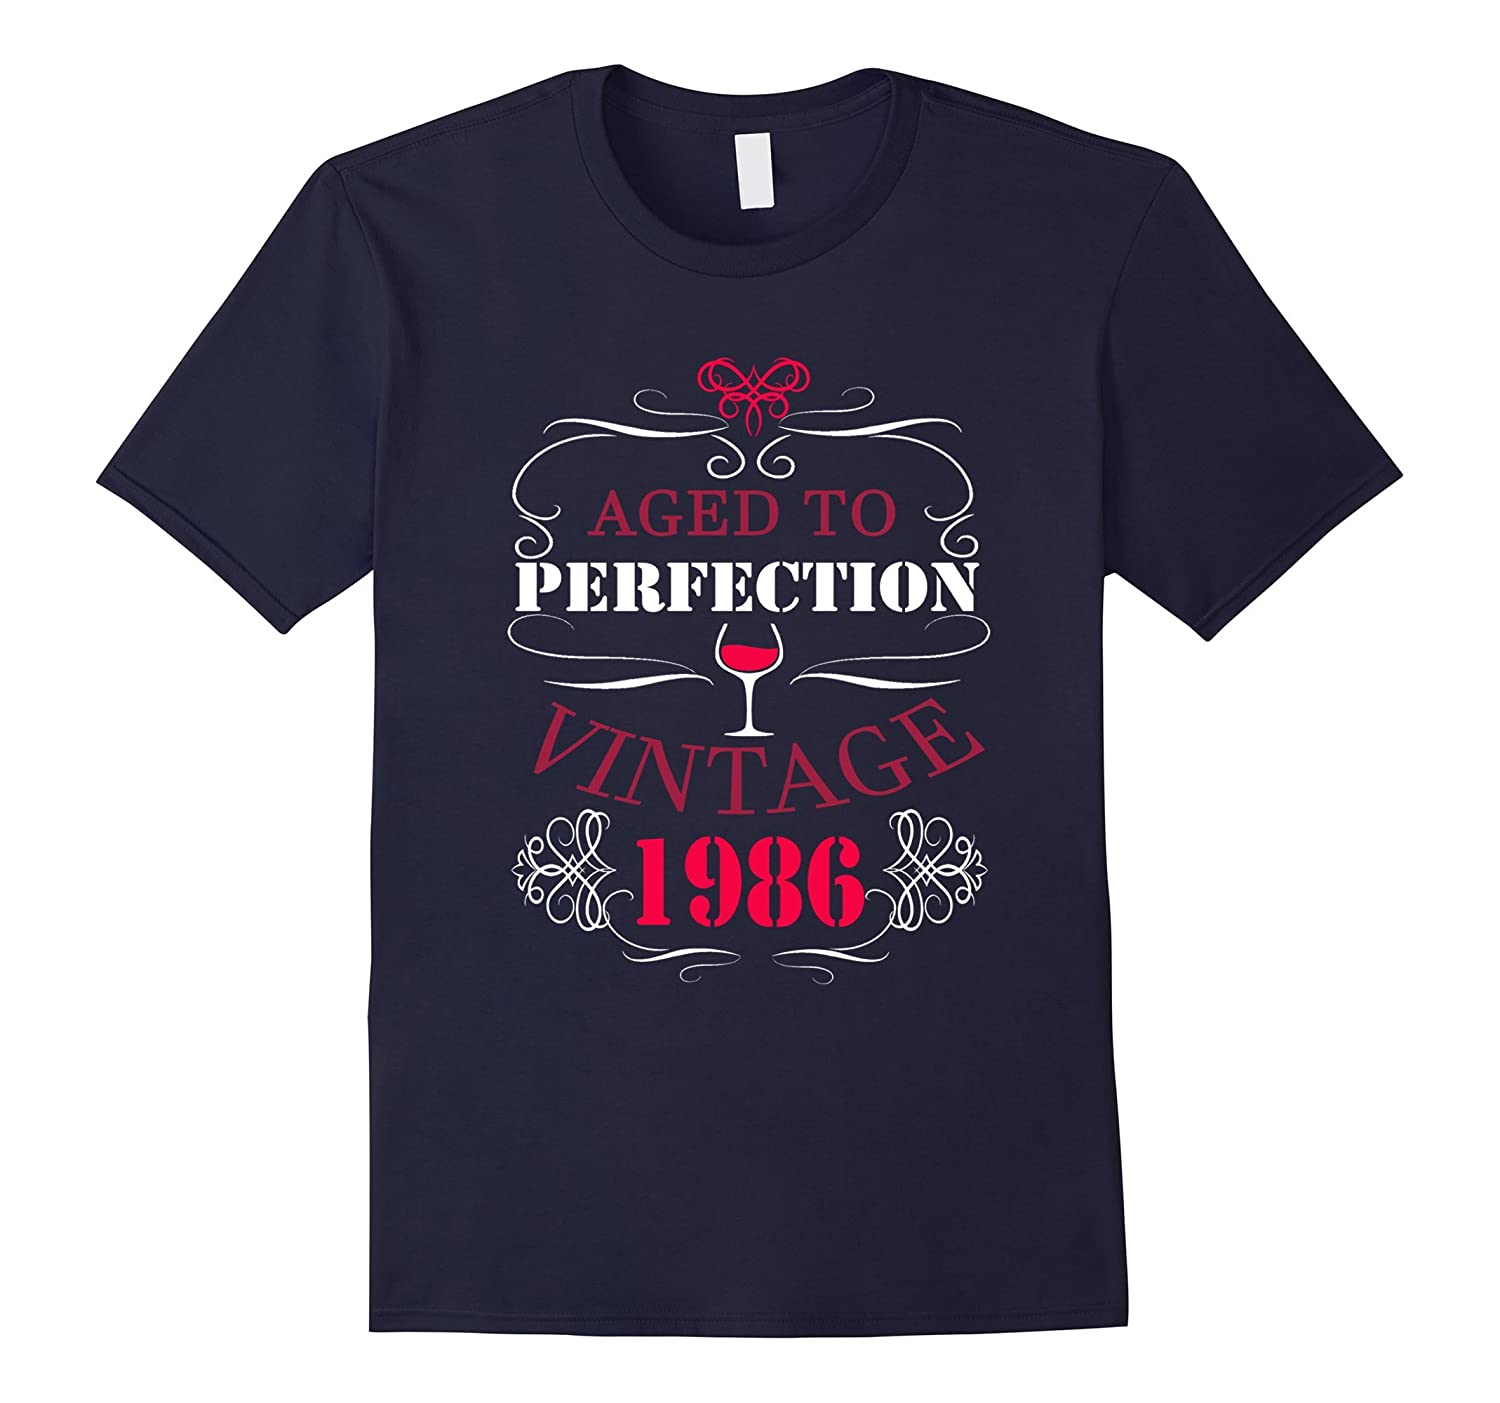 Age to Perfection vintage 1986 T-shirt-Art